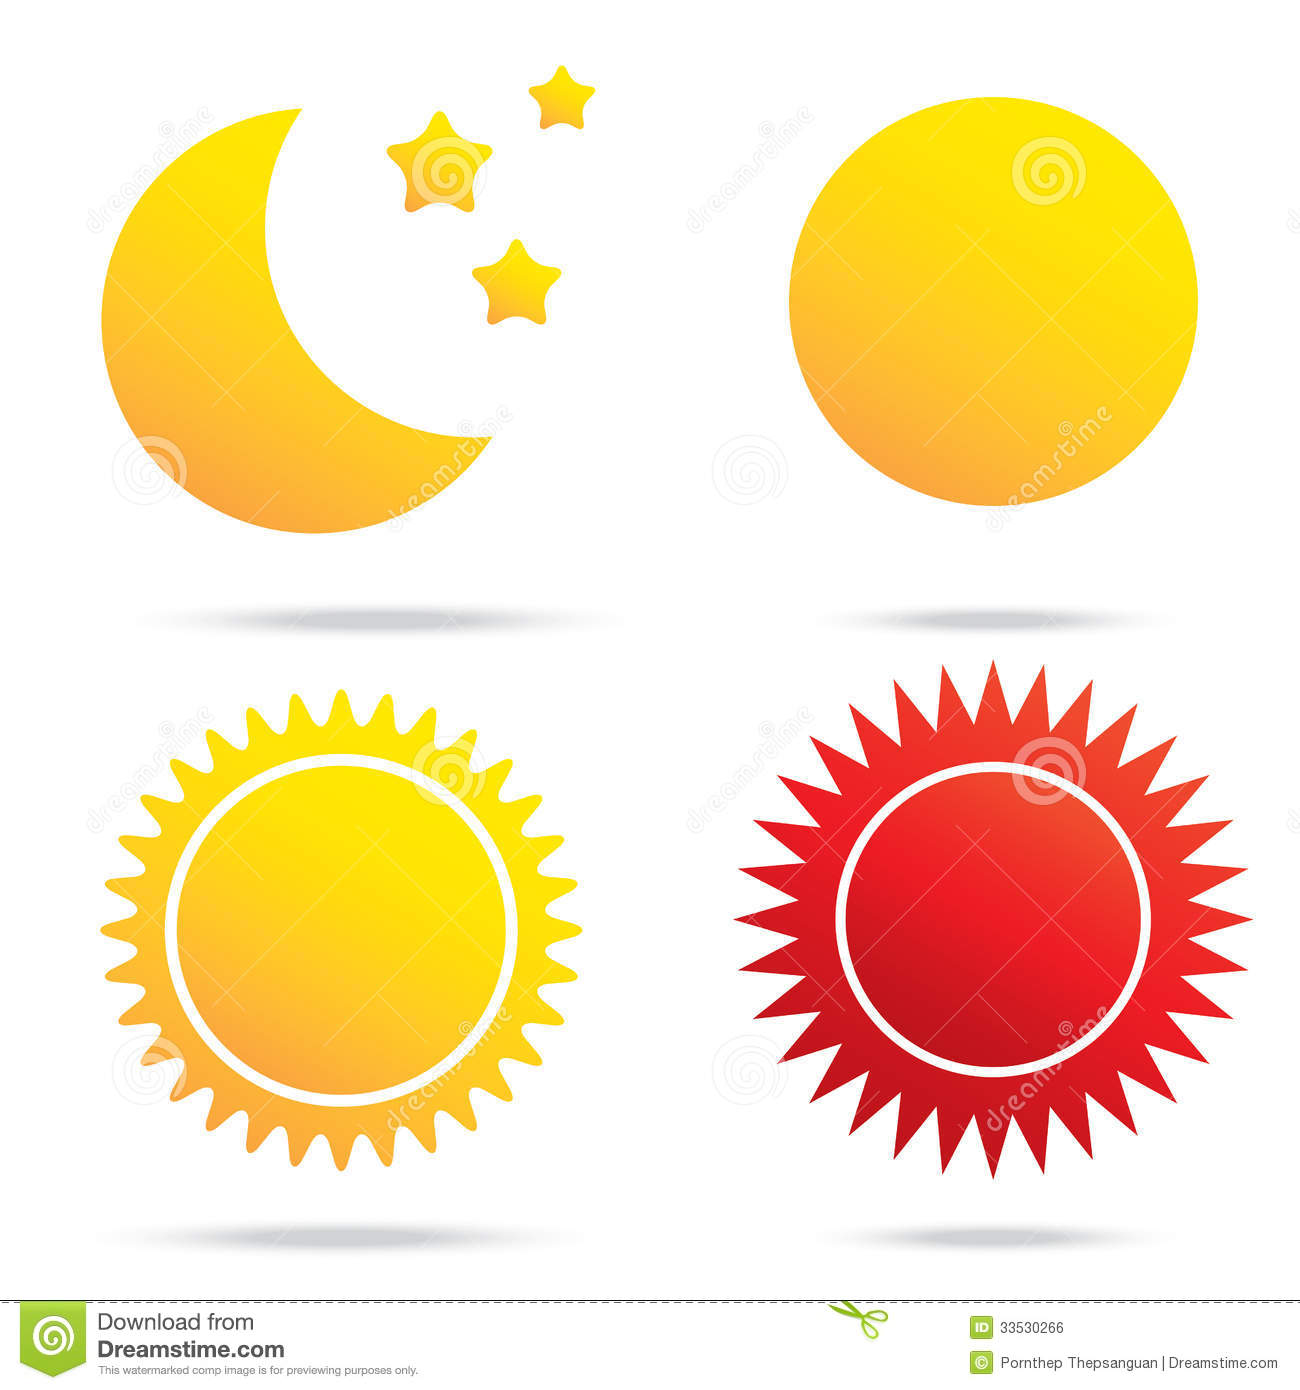 90 Meaning Of Moon Star Symbol Moon Meaning Of Symbol Star